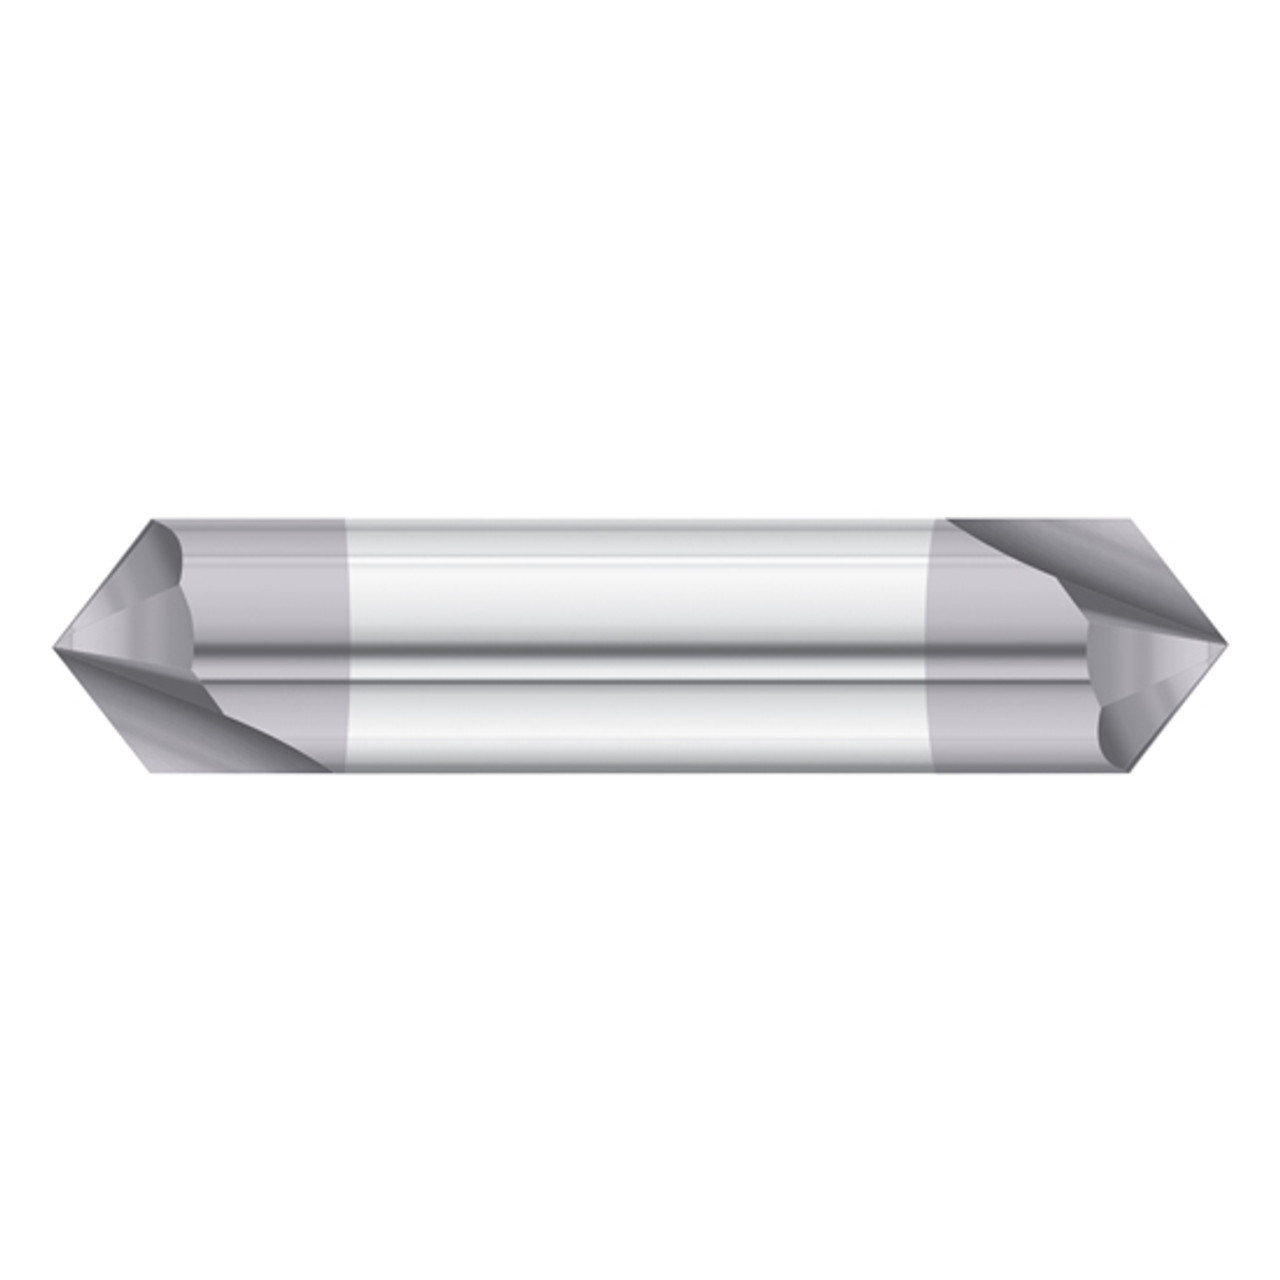 """DOUBLE END TiALN COATED 1//4/"""" 2 FLUTE 90 DEGREE CARBIDE CHAMFER MILL"""